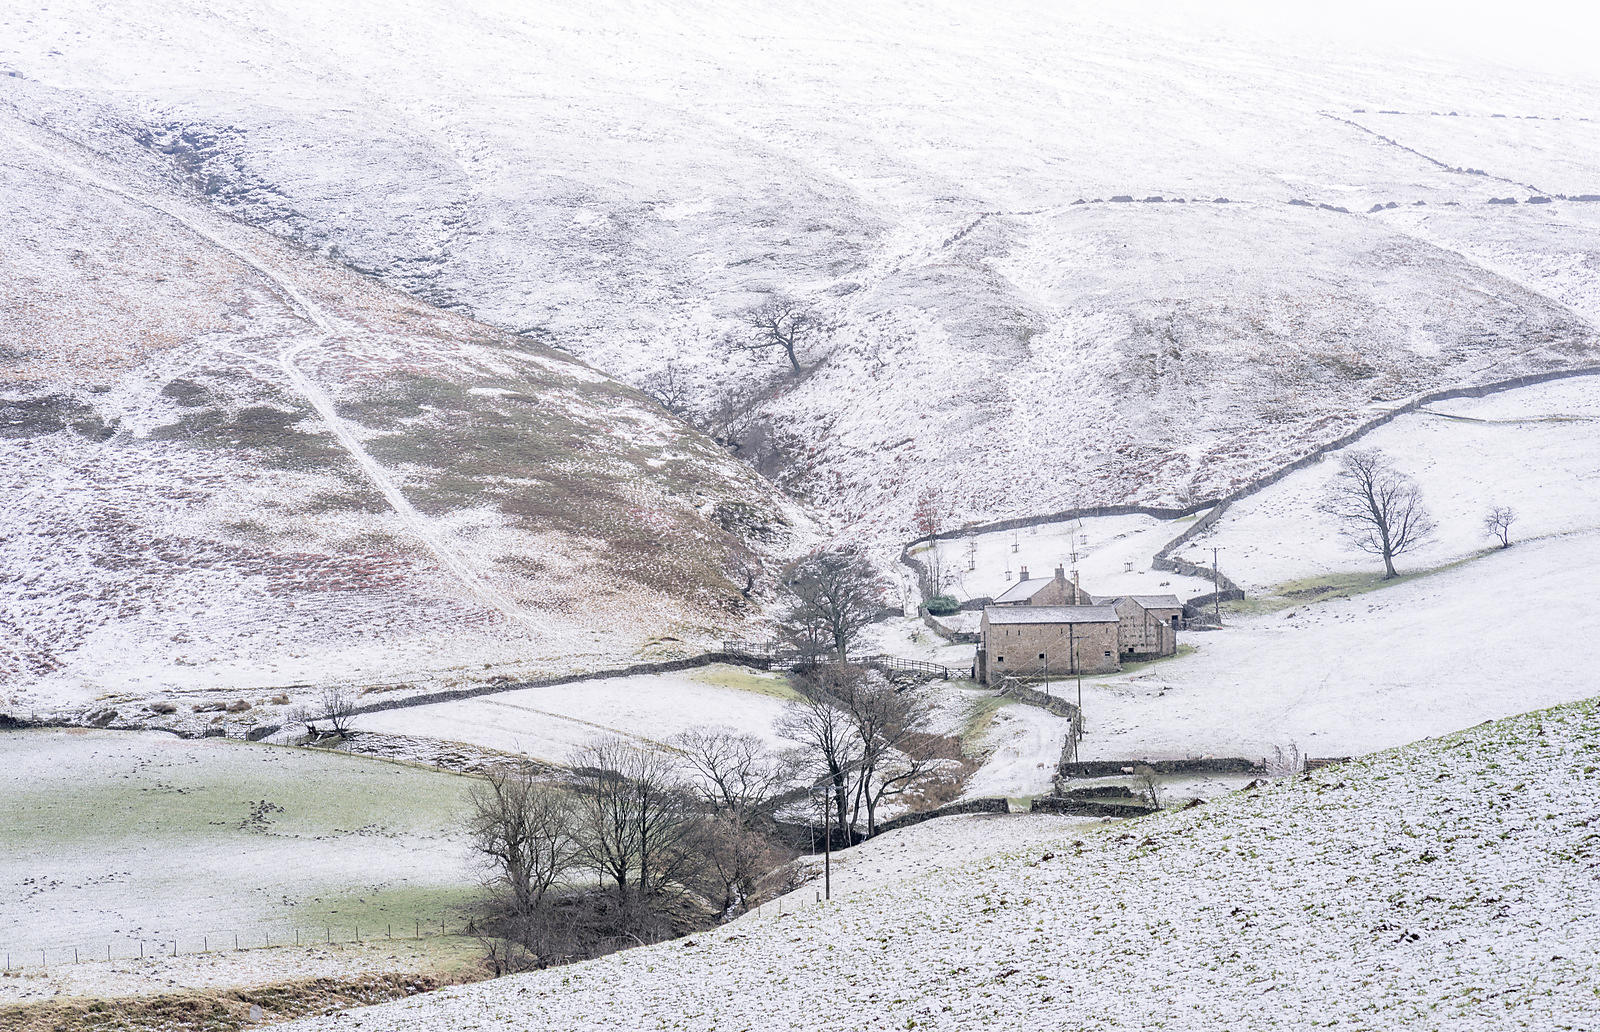 Winter farmhouse near the Snake Pass